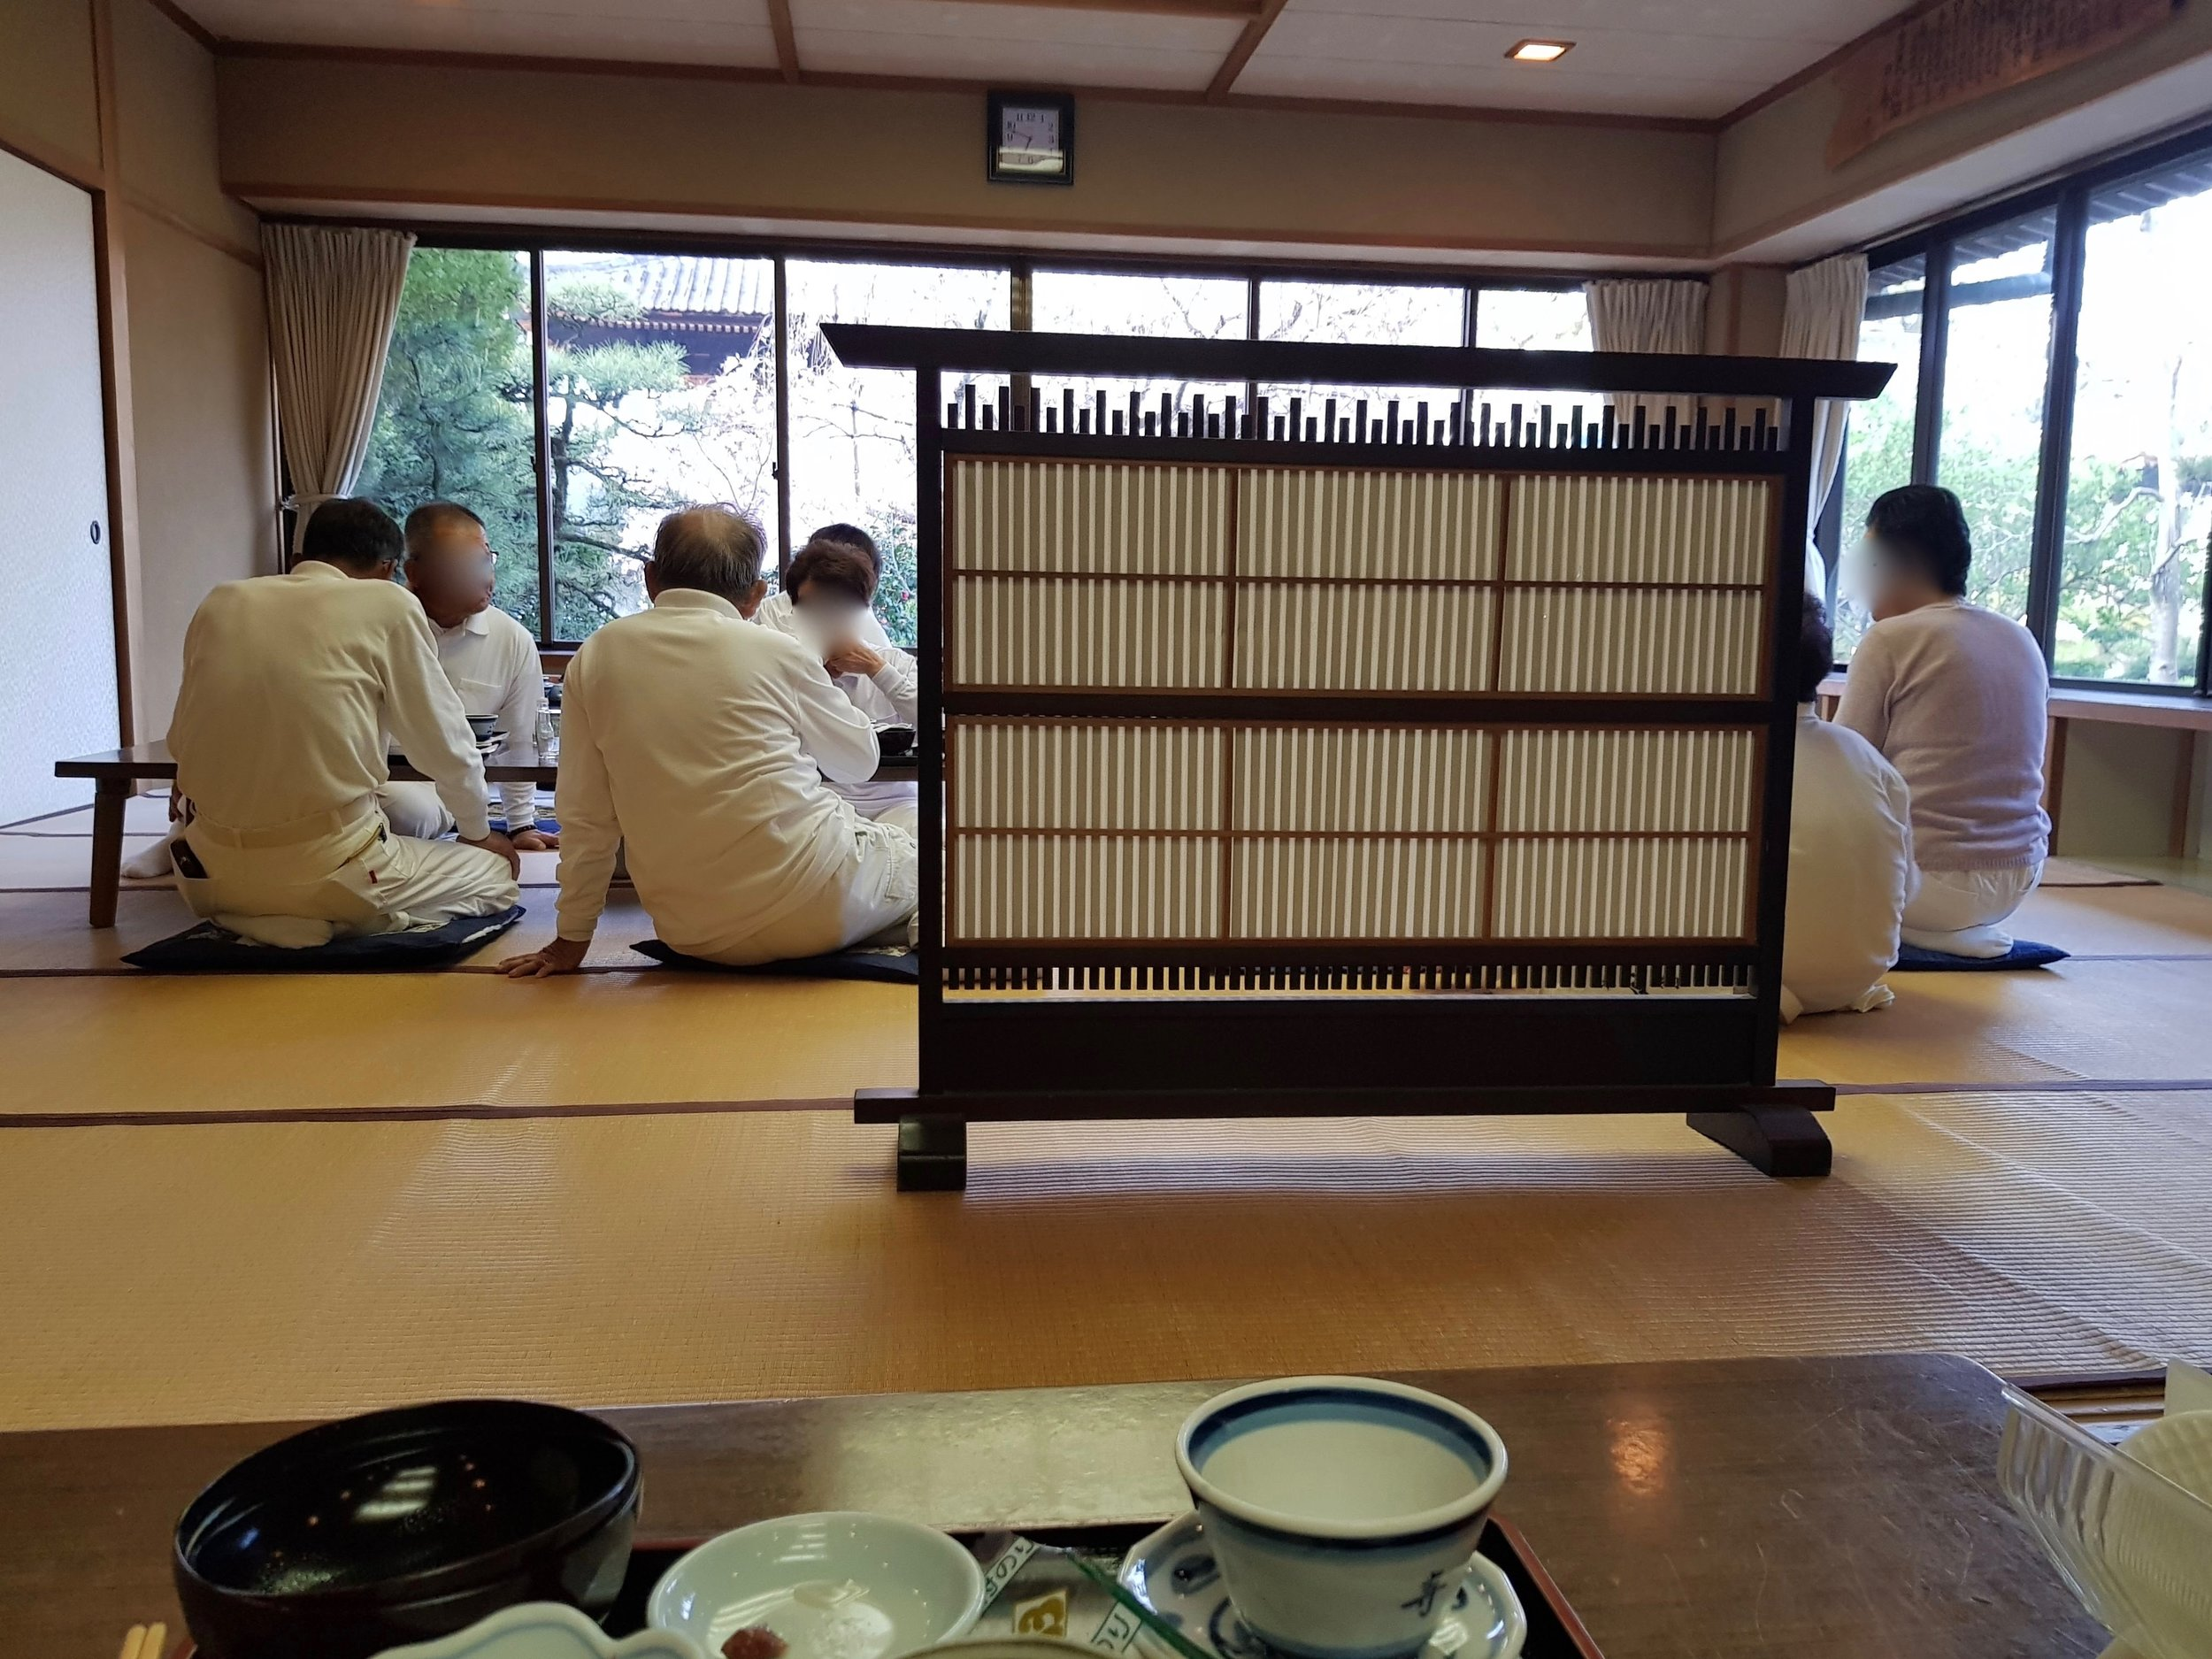 Breakfast at tatsue-ji (立江寺), temple 19. i ate with a nice dutch couple who were touring japan for the first time. they loved everything except the 'terrible coffee'!